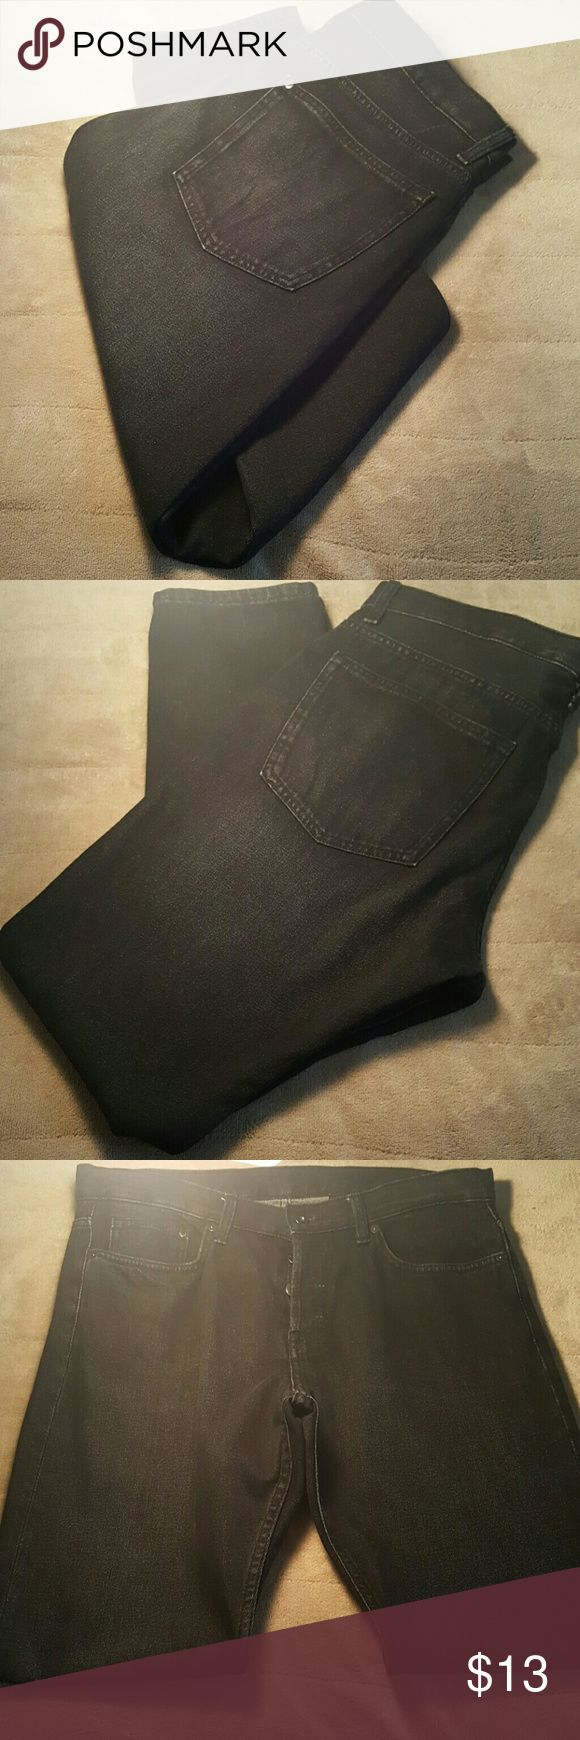 Men's H&M Slim Regular Tapered Jeans Men's H&M Slim Regular Tapered Jeans In Black Faded Wash. 5 Pocket With A Regular Waist, Button Fly and Tapered Legs. Gently Used. Worn No More Than Twice. 100% Cotton. 34 Waist 32 Inseam H&M Jeans Slim